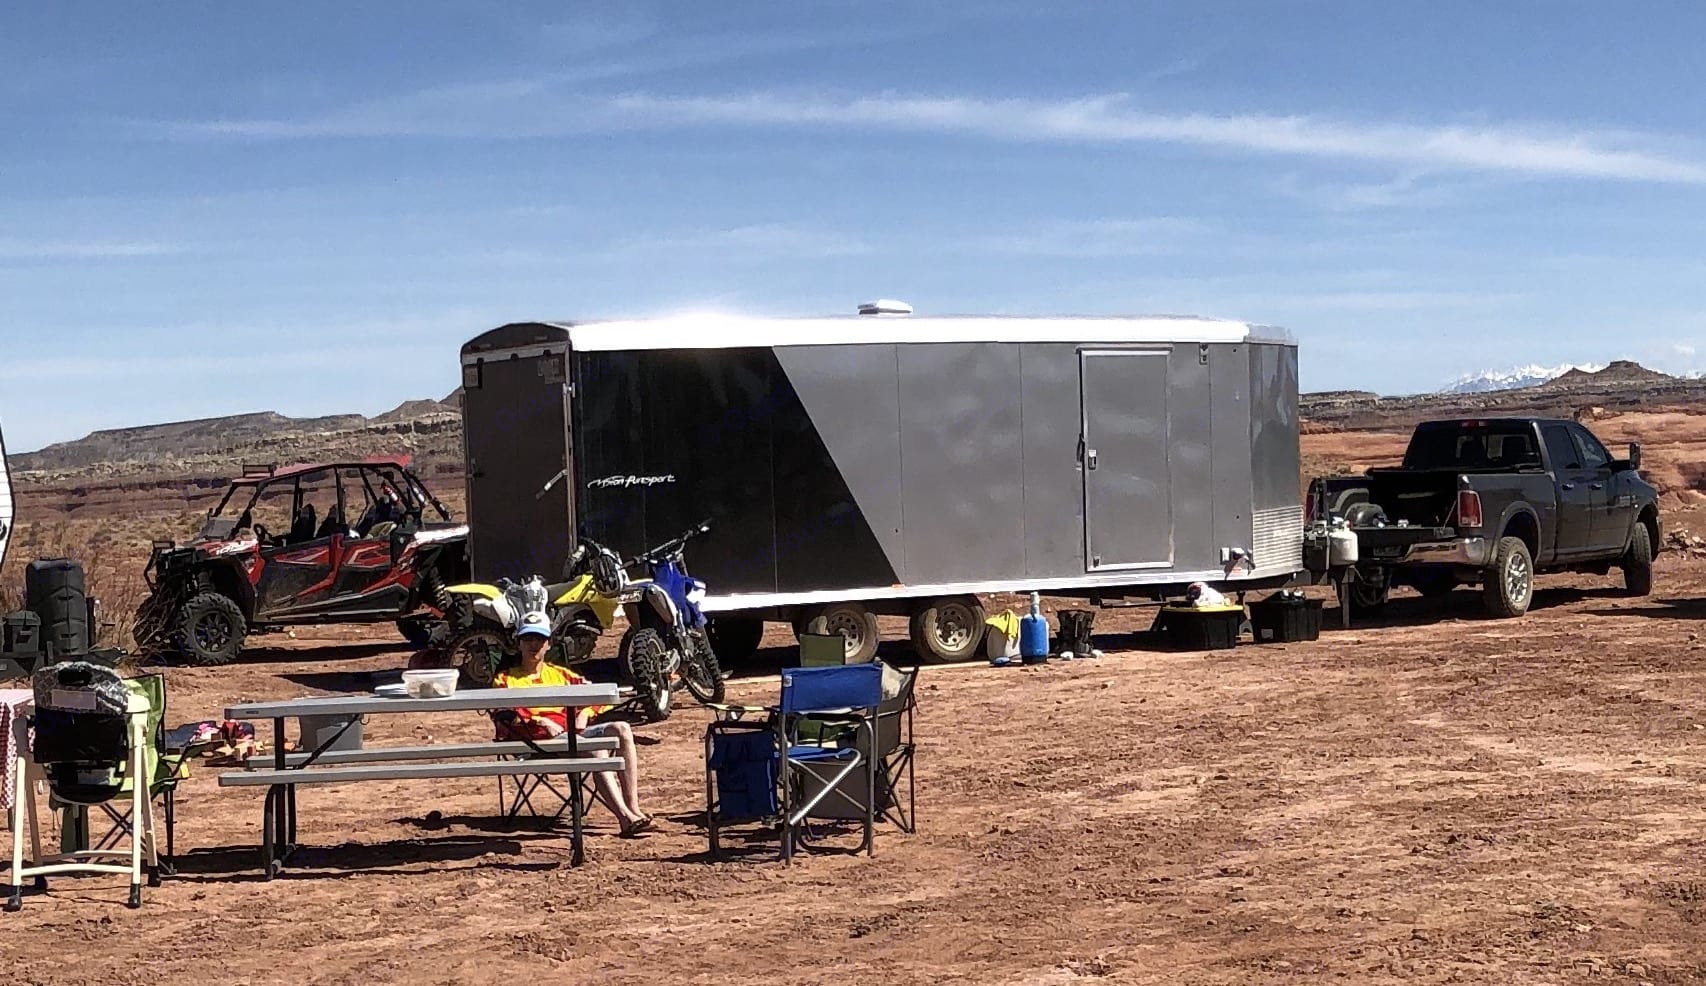 27 Foot Toy Hauler/Trailer  setup for great overnight accomodations. Vision puresport 2018